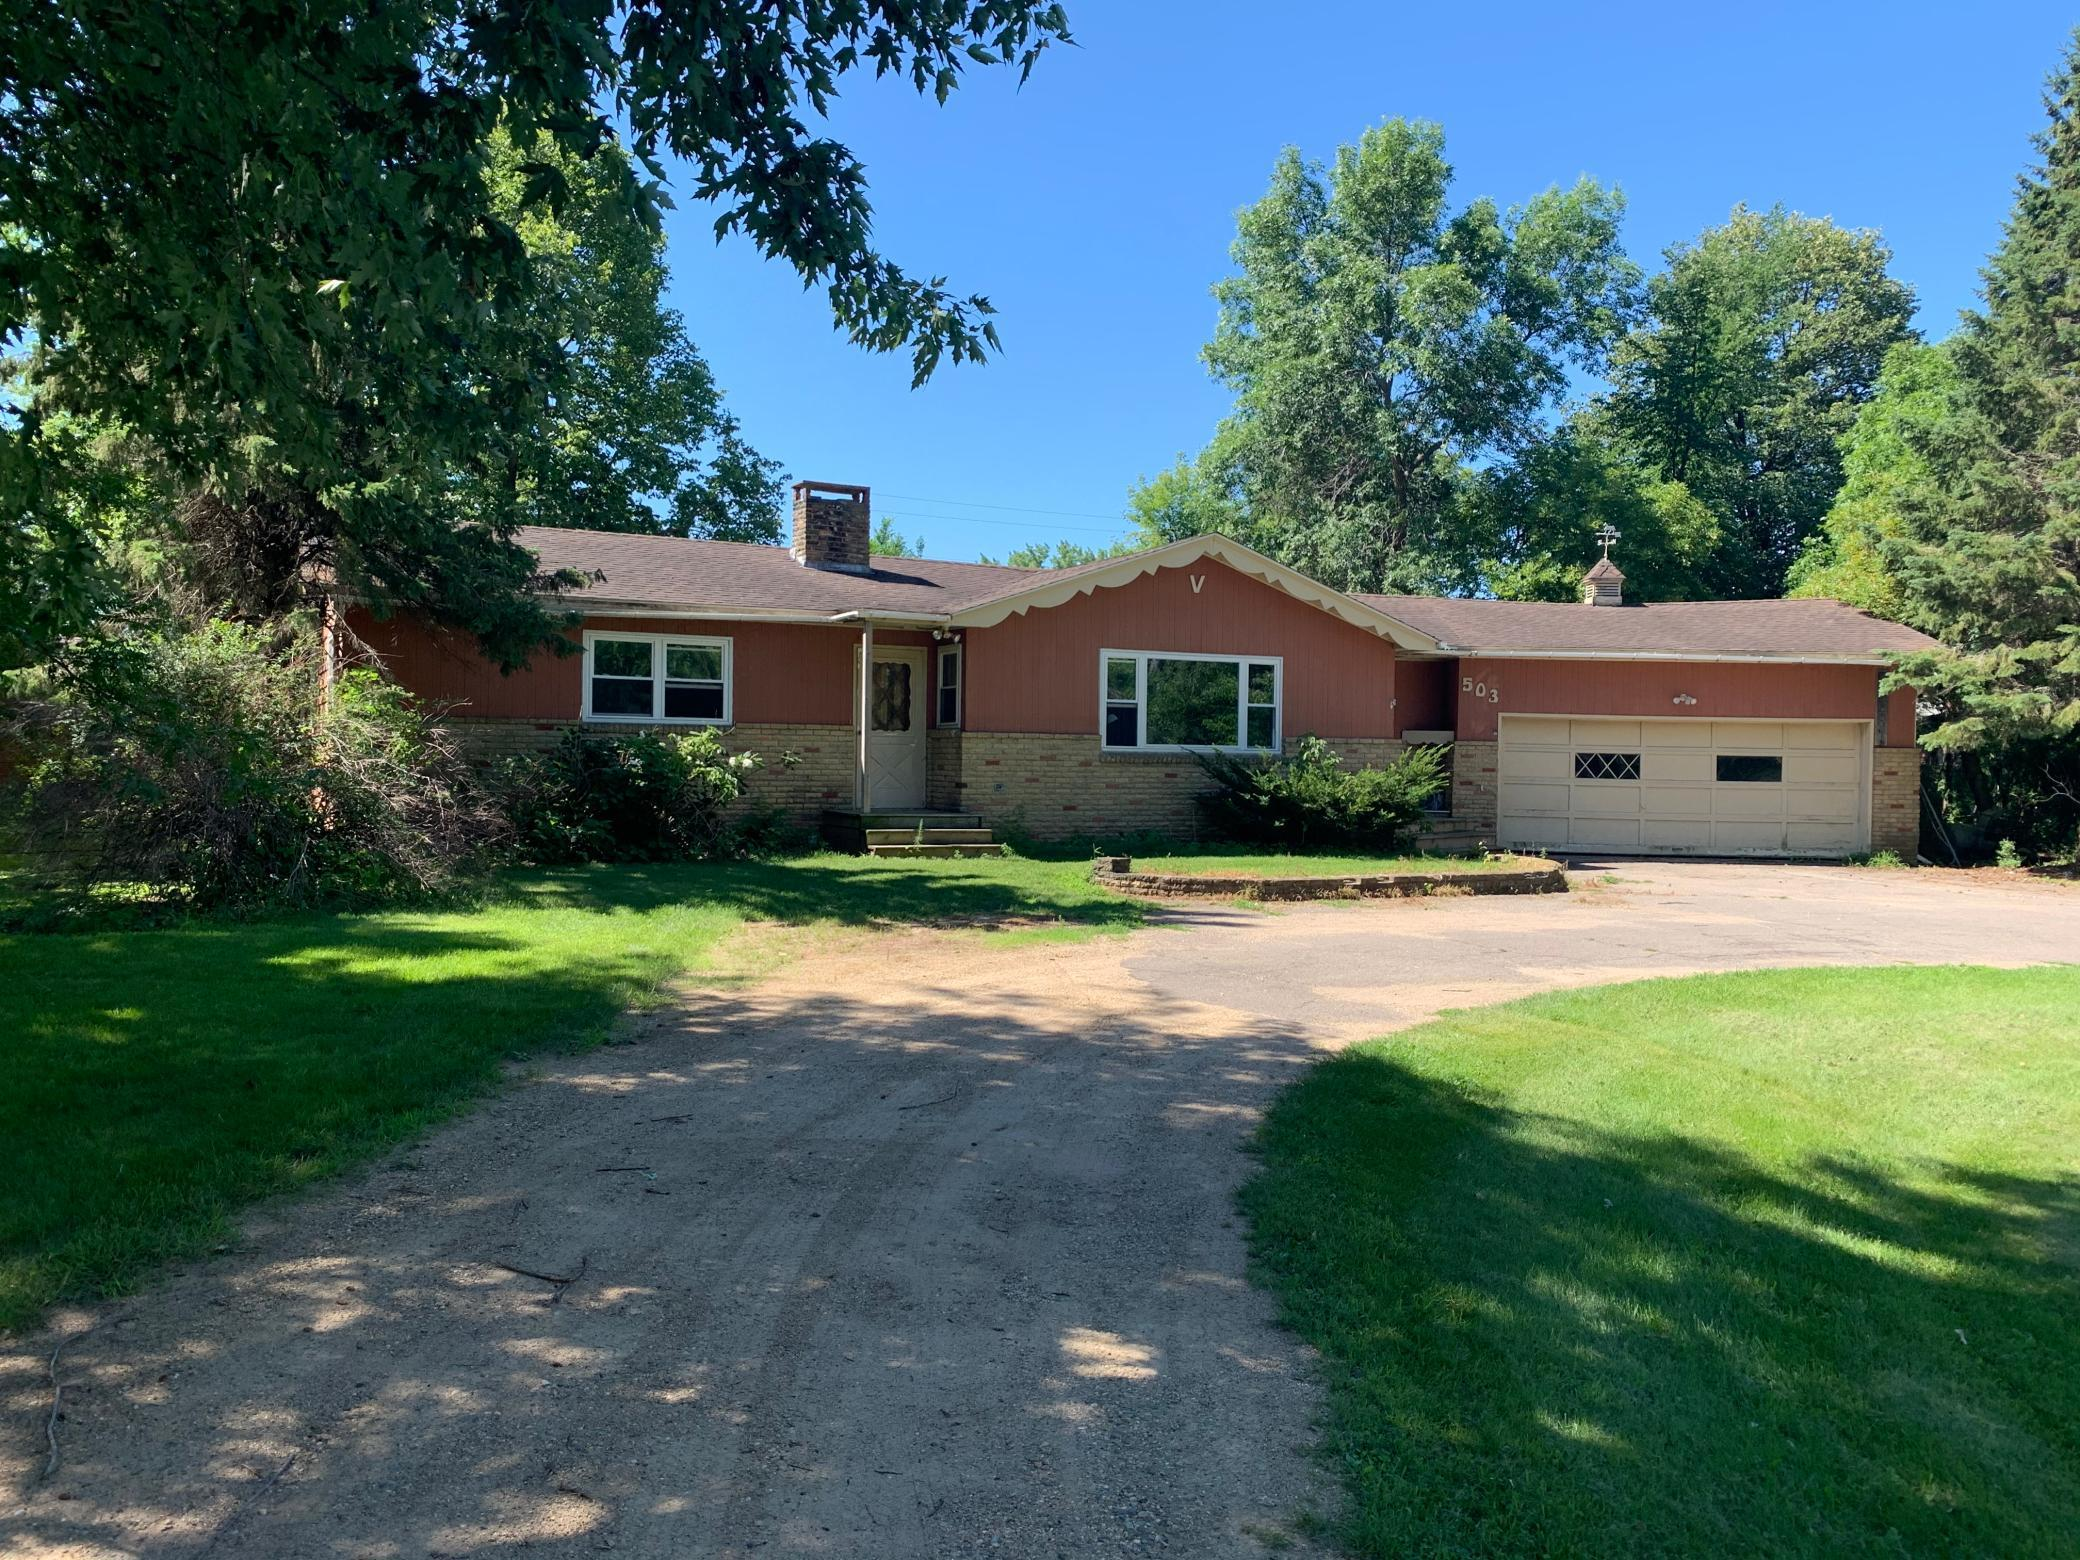 503 Leslie W Property Photo - Clarissa, MN real estate listing